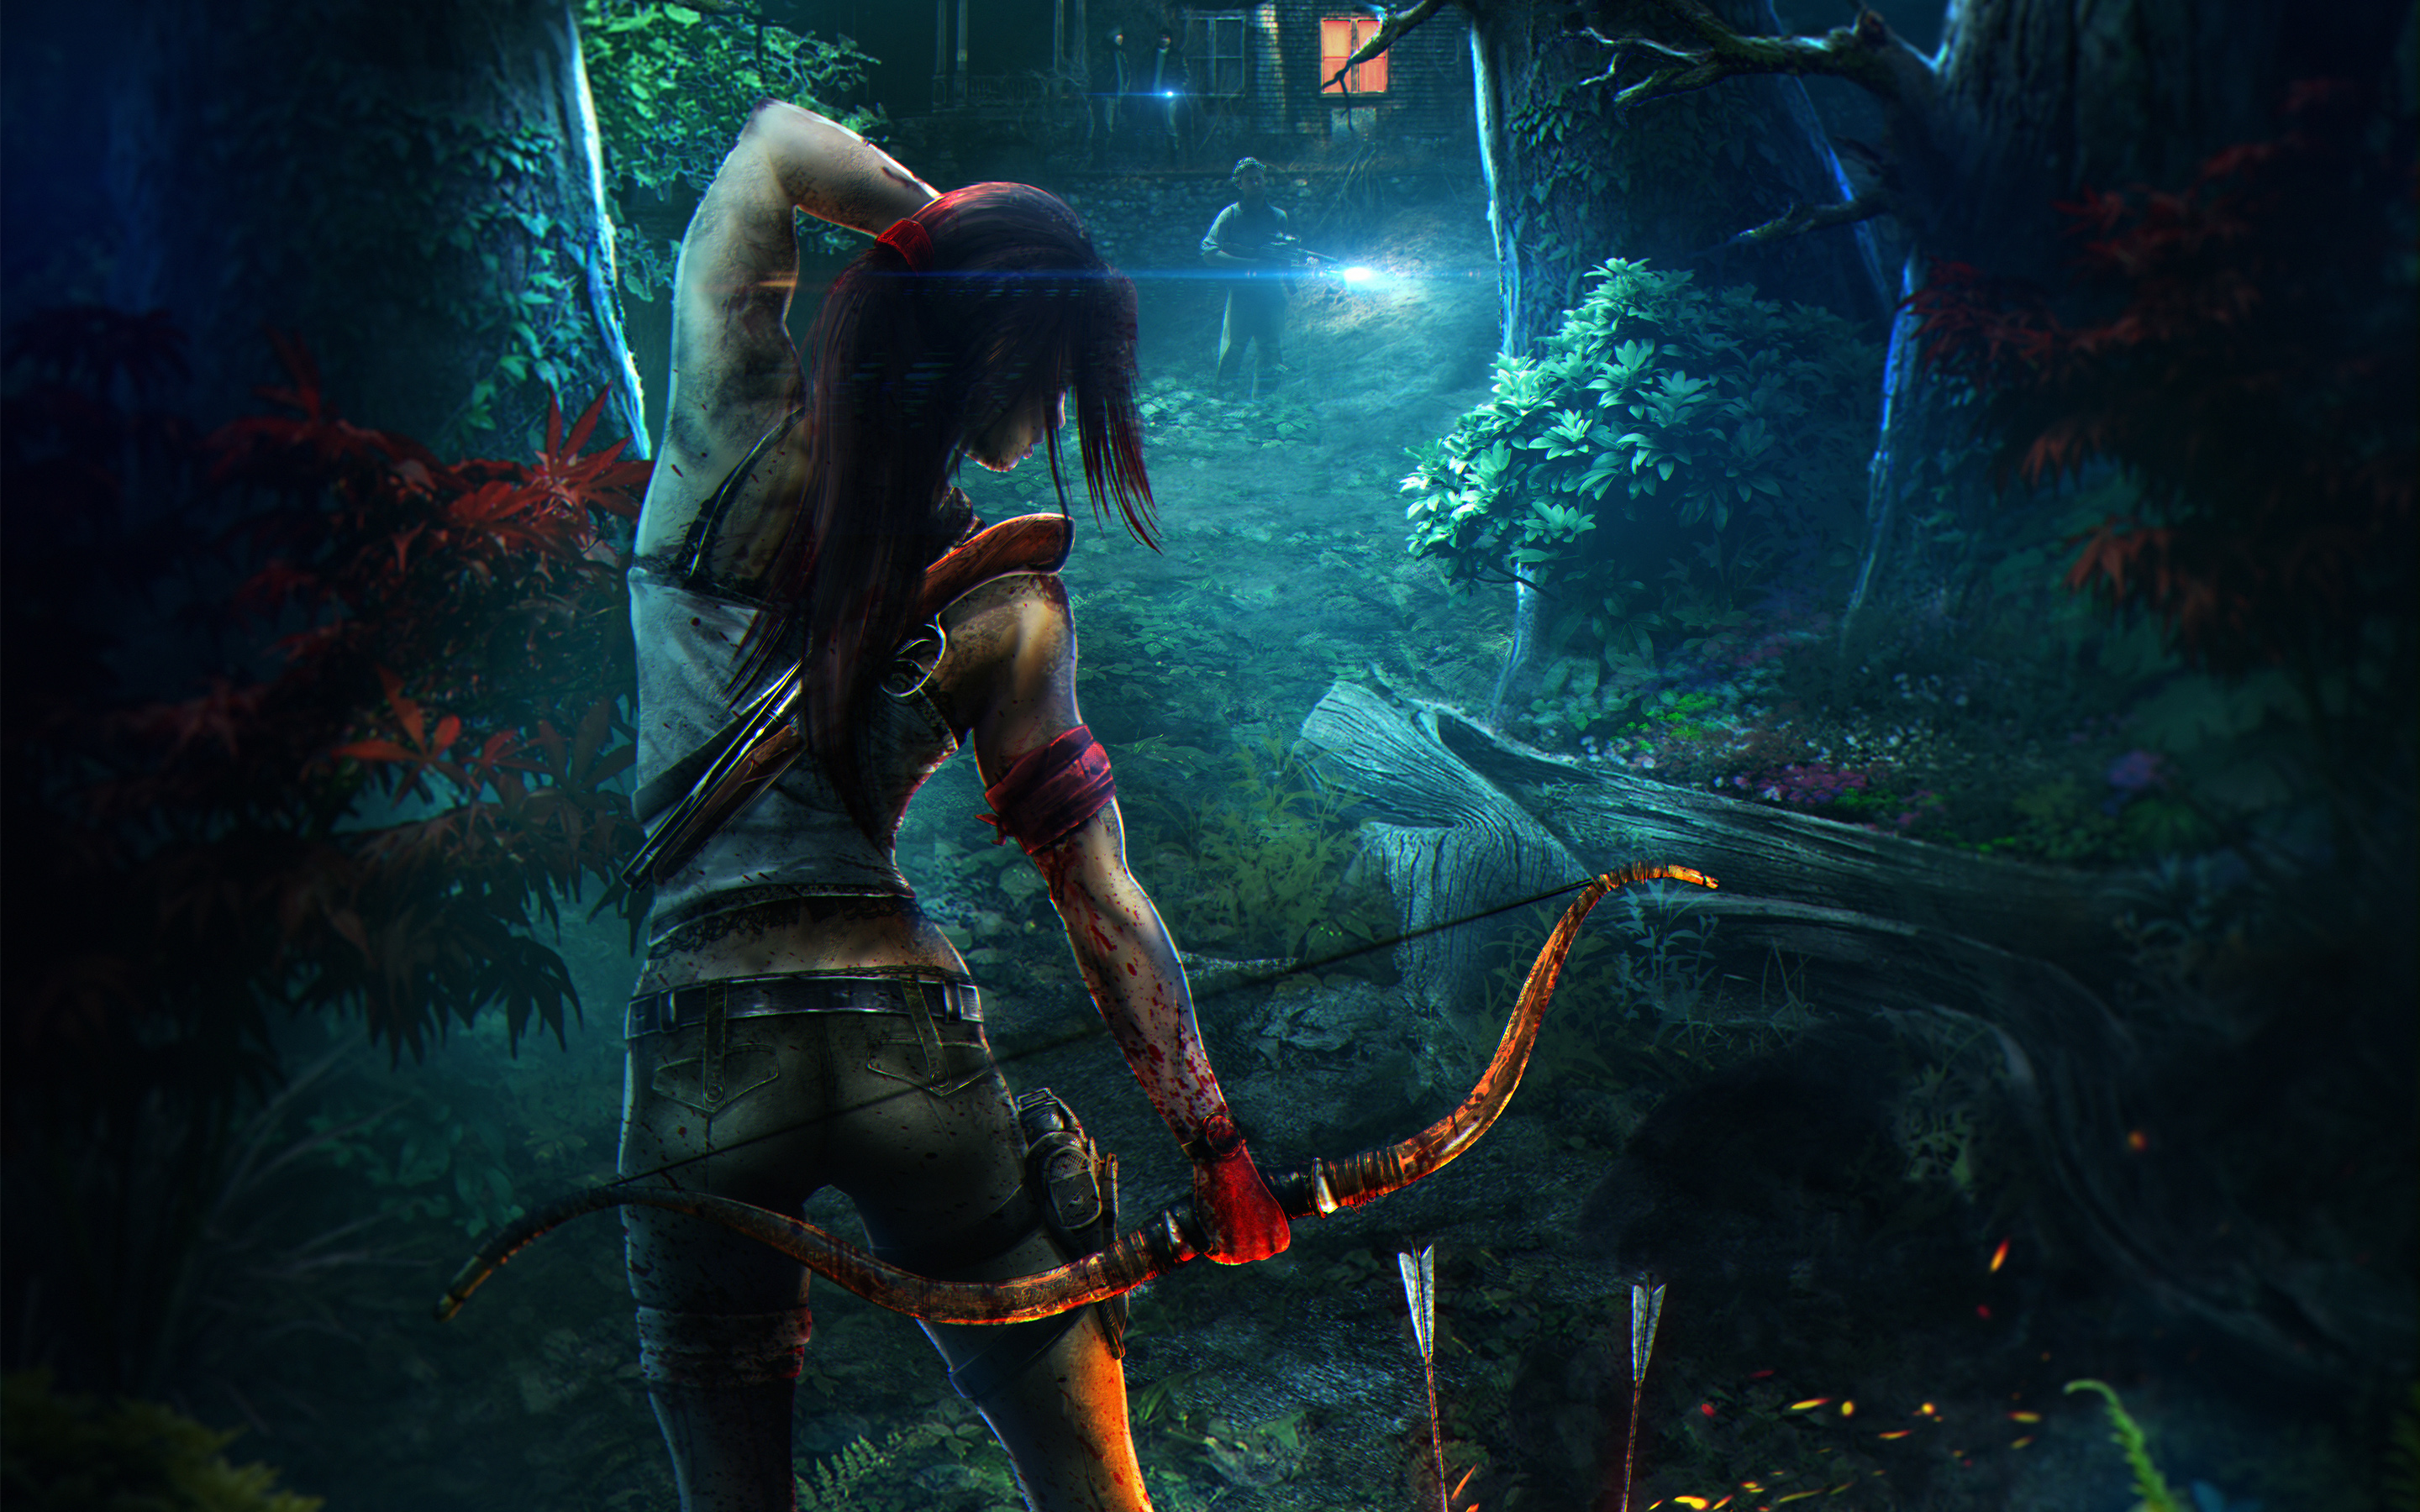 HD Wallpapers Tomb Raider Quest